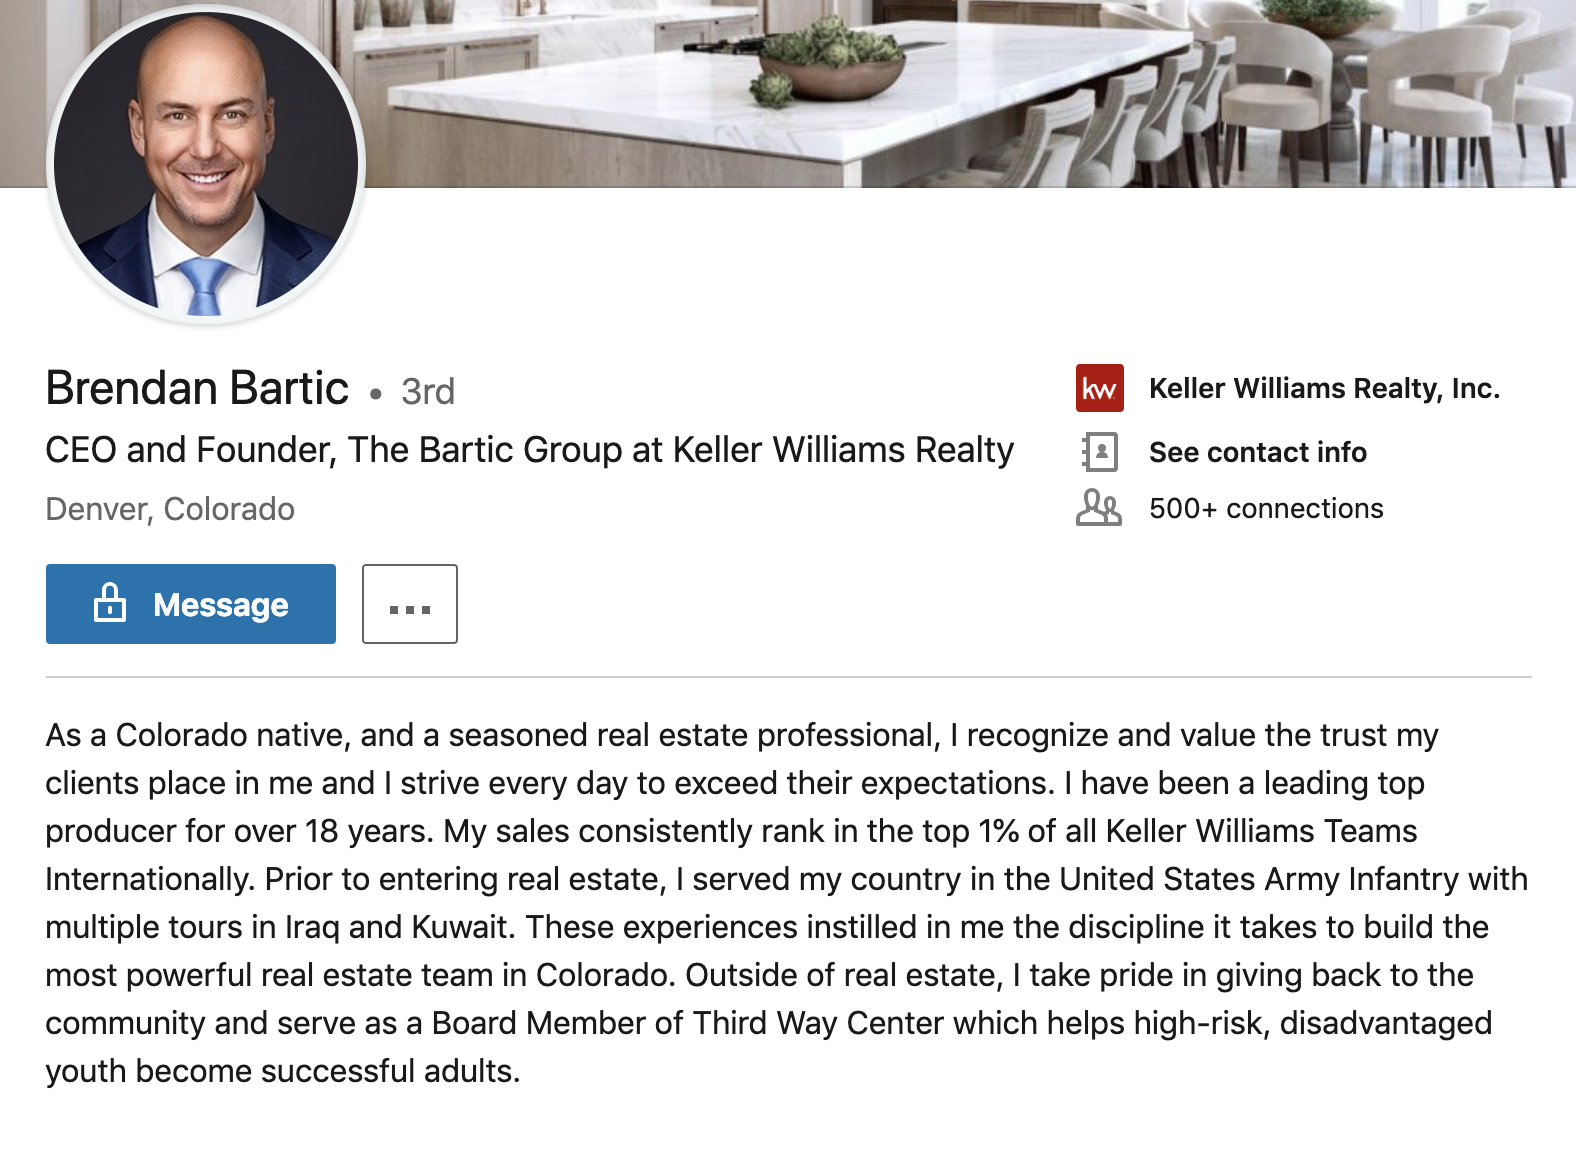 Example of a great real estate agent profile on LikedIn